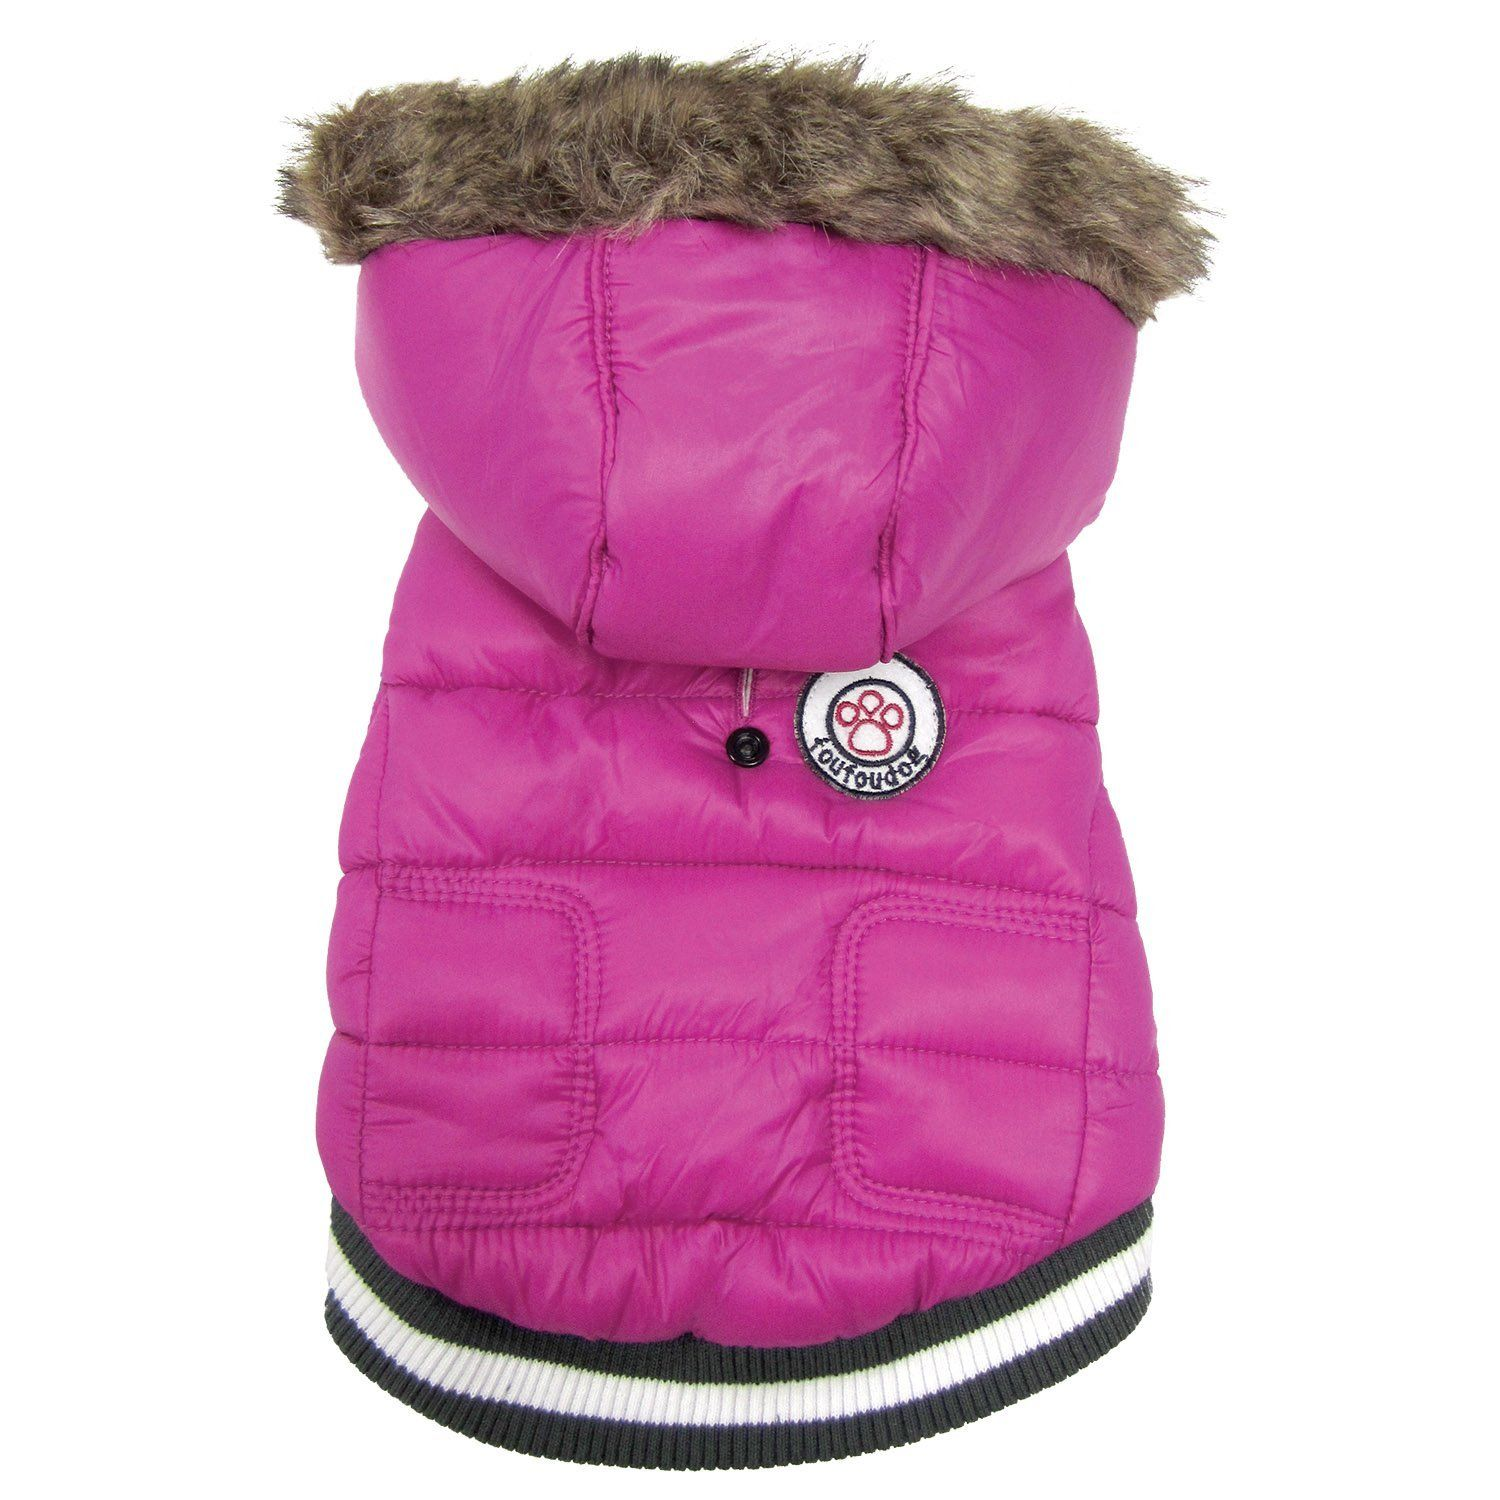 FouFou Dog 62537 Expedition Parka for Dogs, Medium, Pink